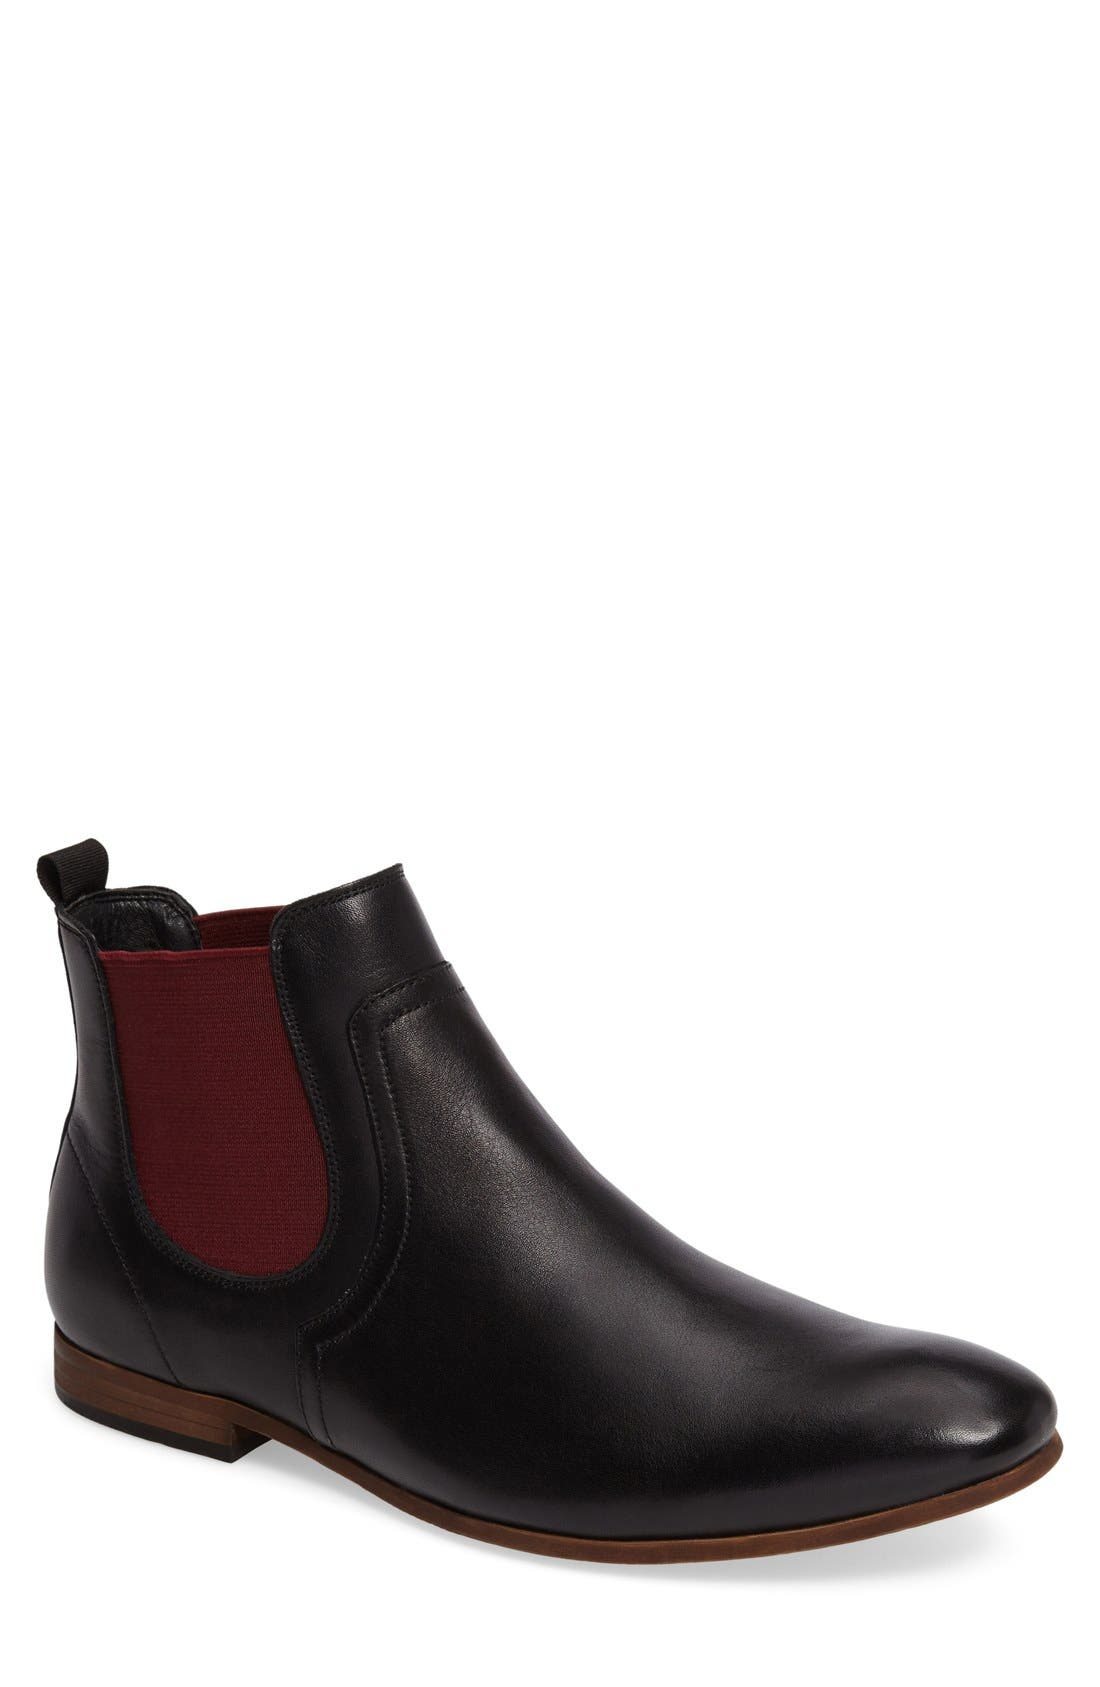 Brysen Chelsea Boot,                             Main thumbnail 1, color,